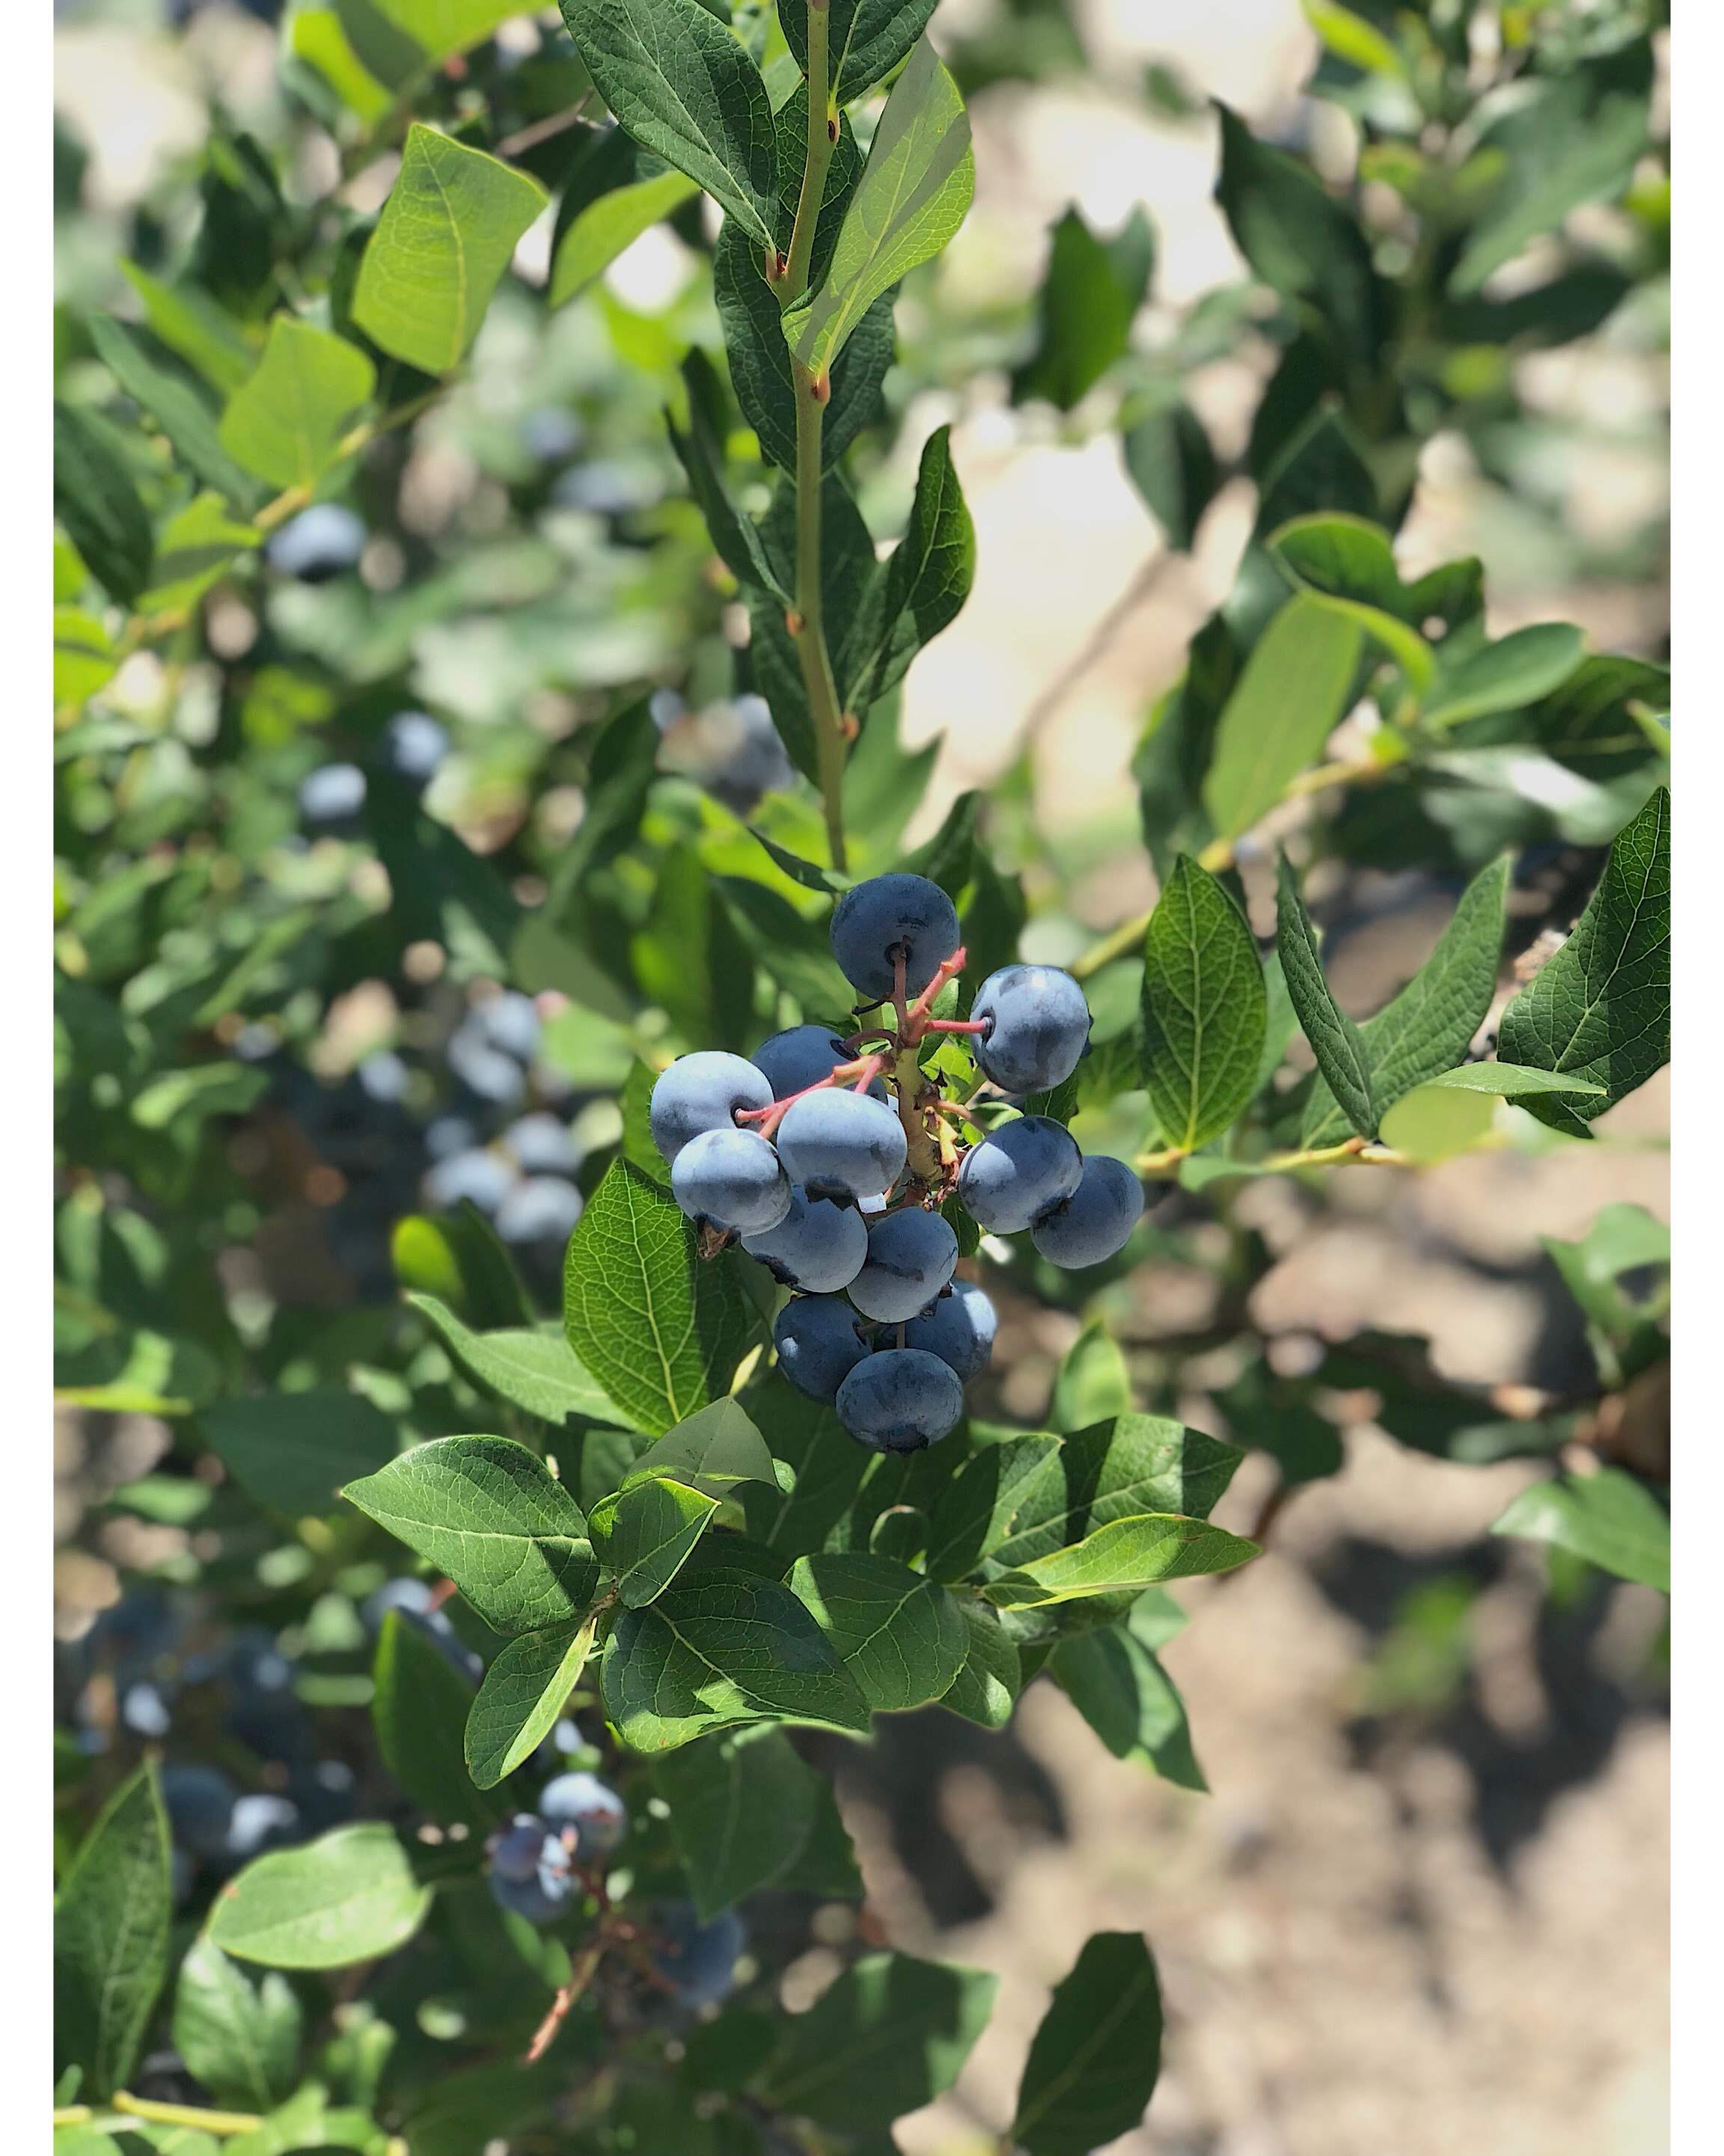 Picture my sister in law took at the blueberry farm my family gets their blueberries from--Hammonton, NJ {blueberry capital)!